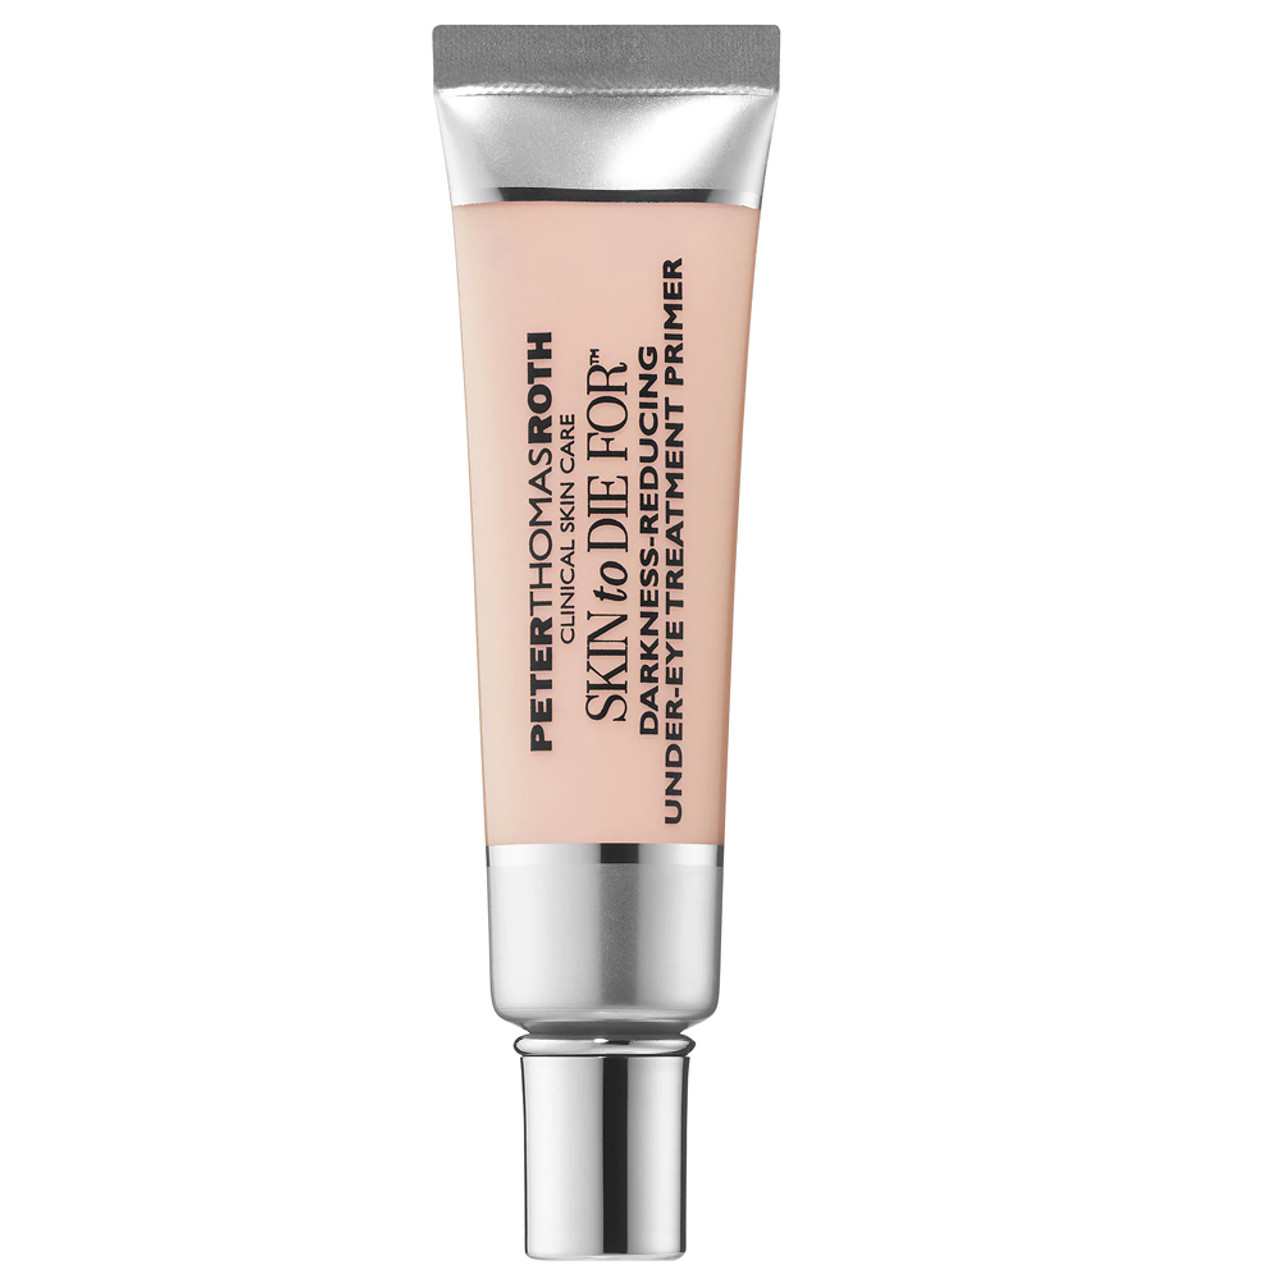 Peter Thomas Roth Skin To Die For Darkness-Reducing Under Eye Treatment Primer